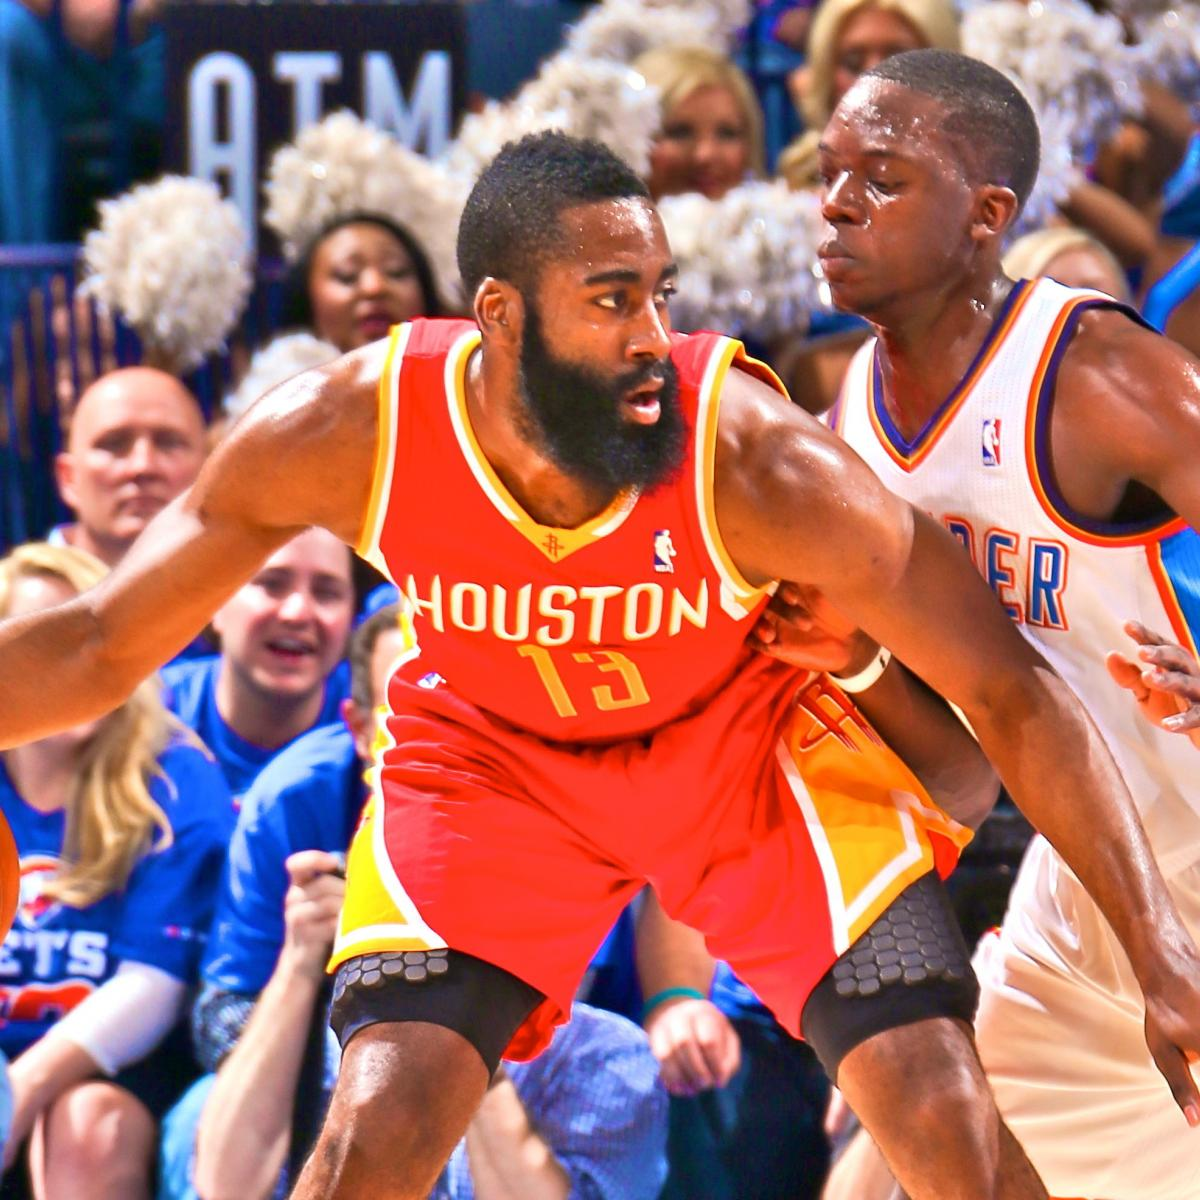 Houston Rockets Vs Okc: Houston Rockets Vs. Oklahoma City Thunder: Game 5 Score